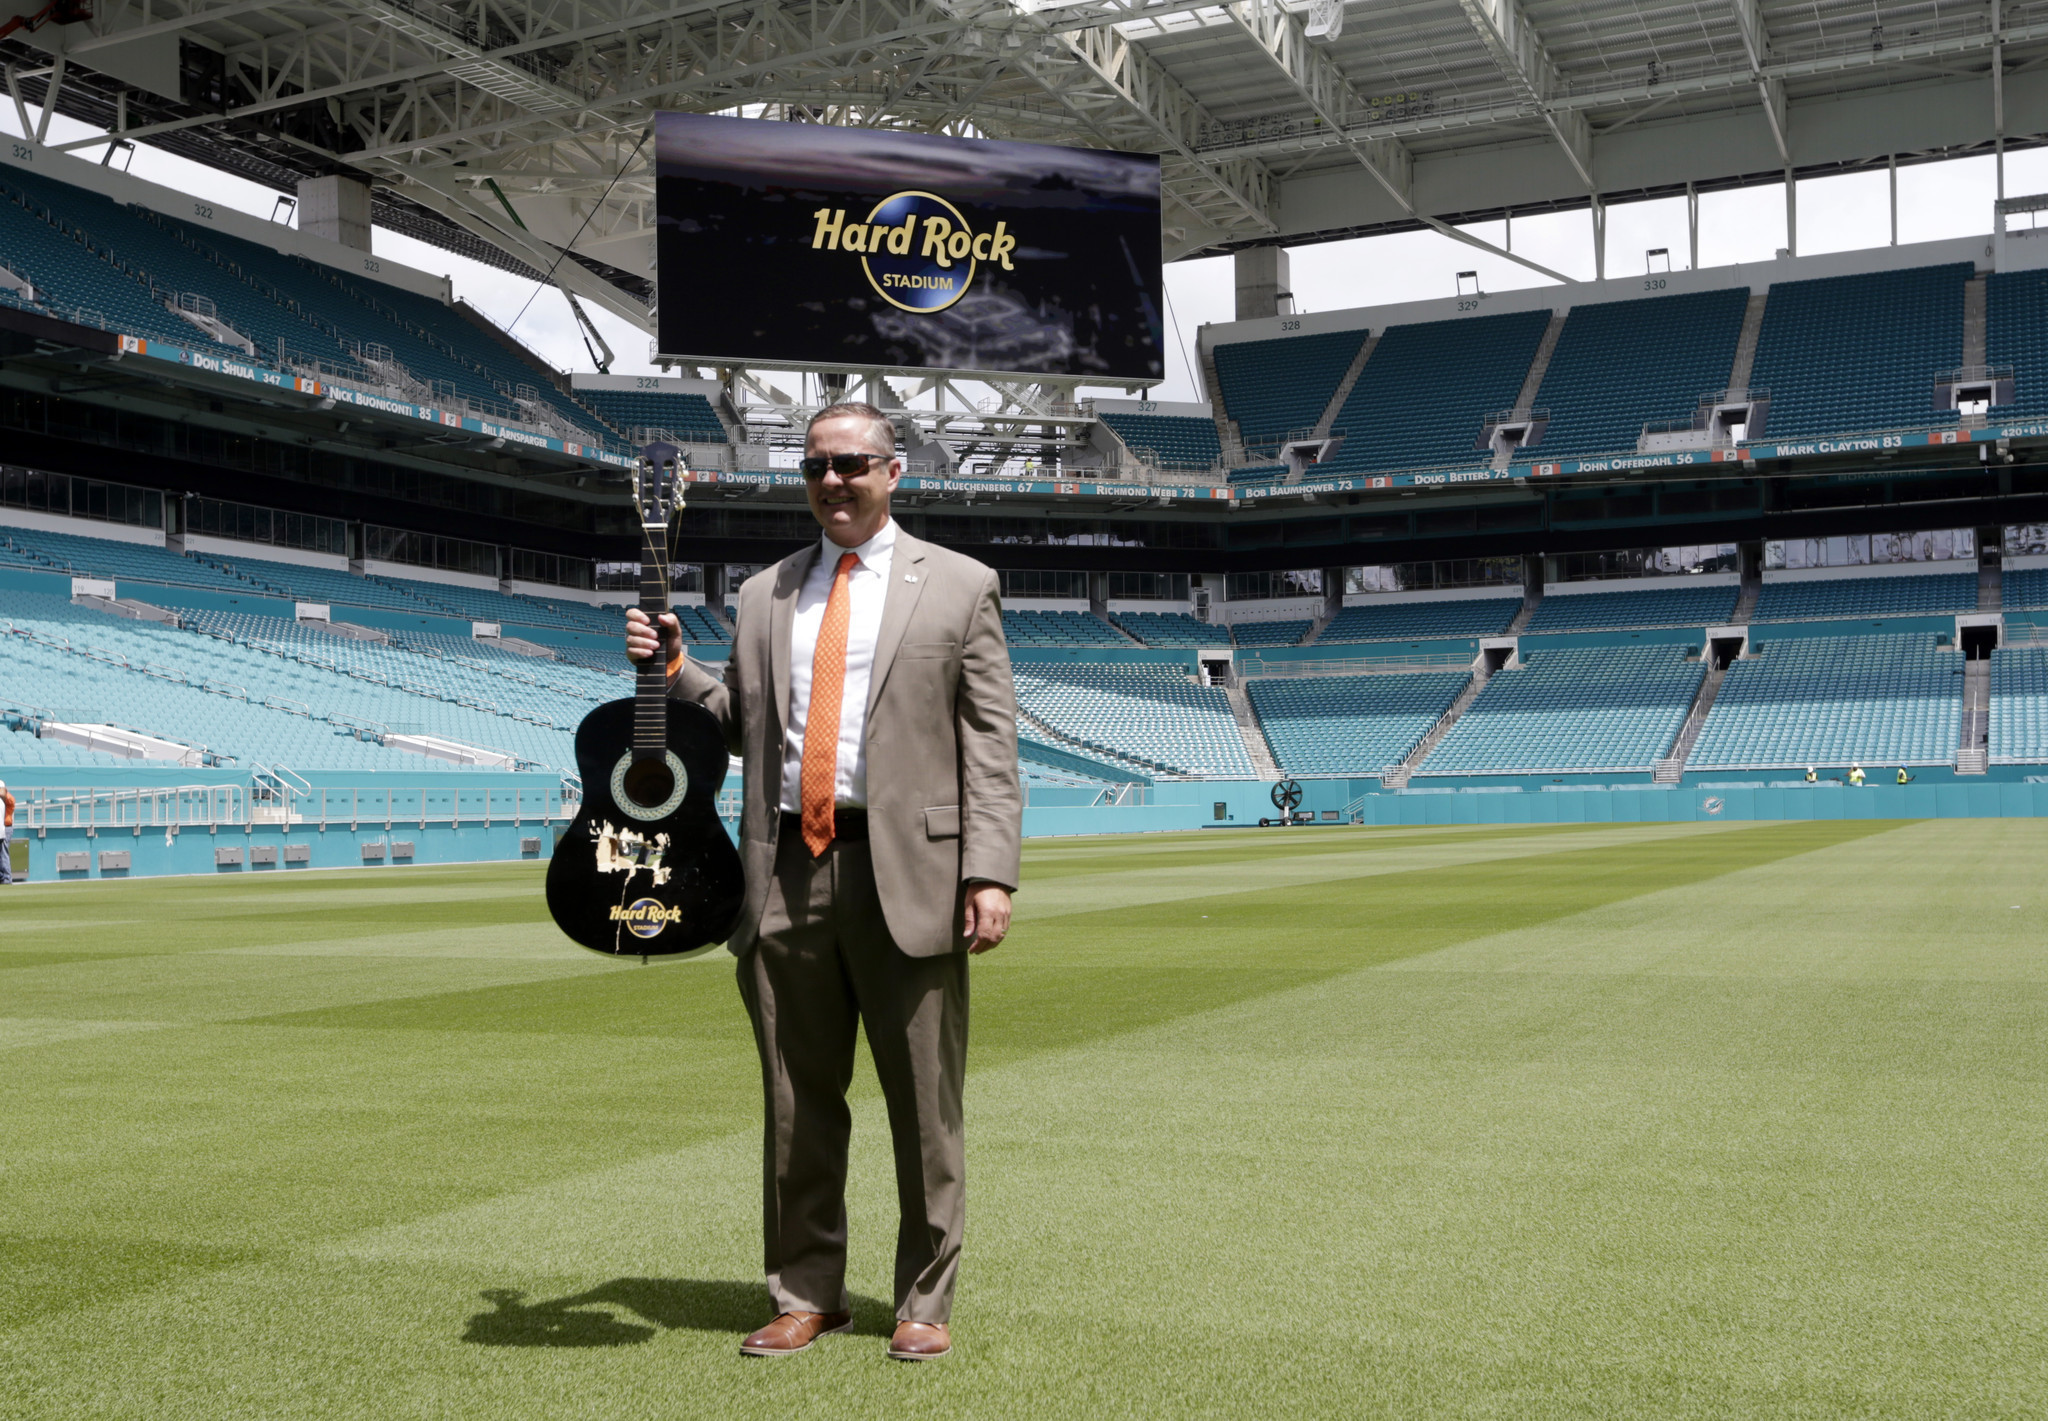 Sfl-um-s-blake-james-says-canes-close-on-indoor-facility-funding-school-still-finalizing-spring-football-20170215